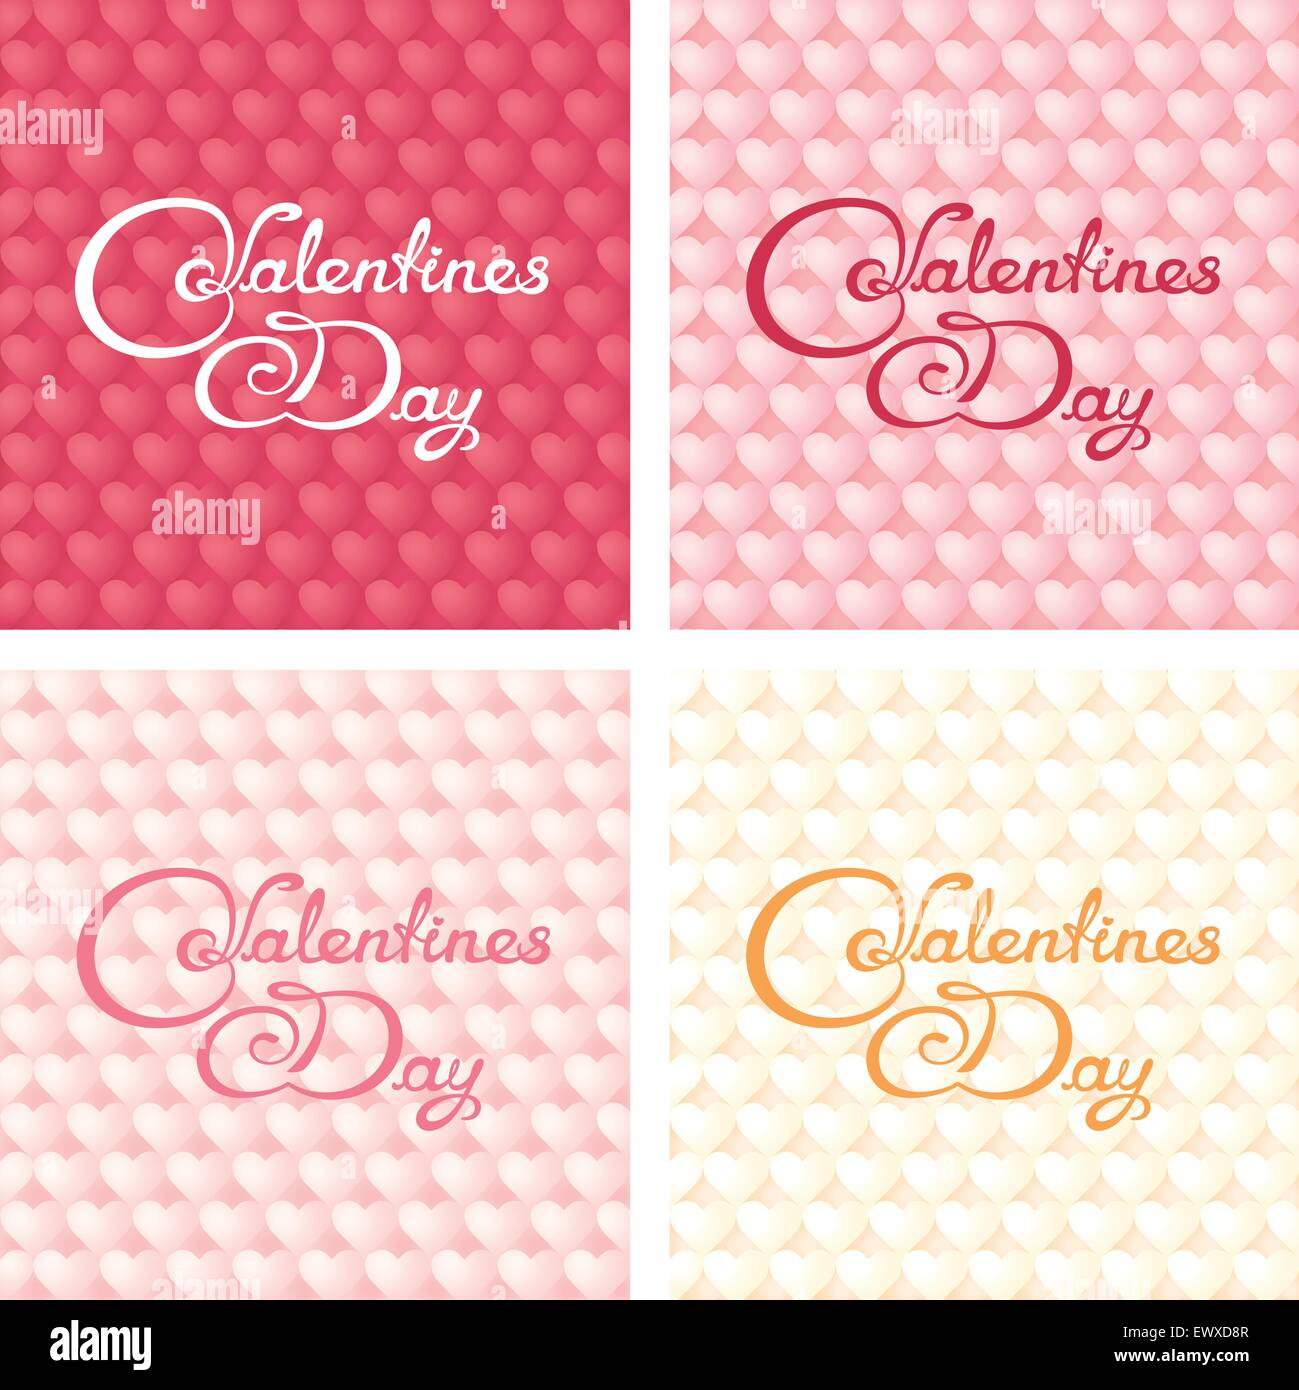 Four gentle valentines banners with calligraphy lettering on hearts background - Stock Vector